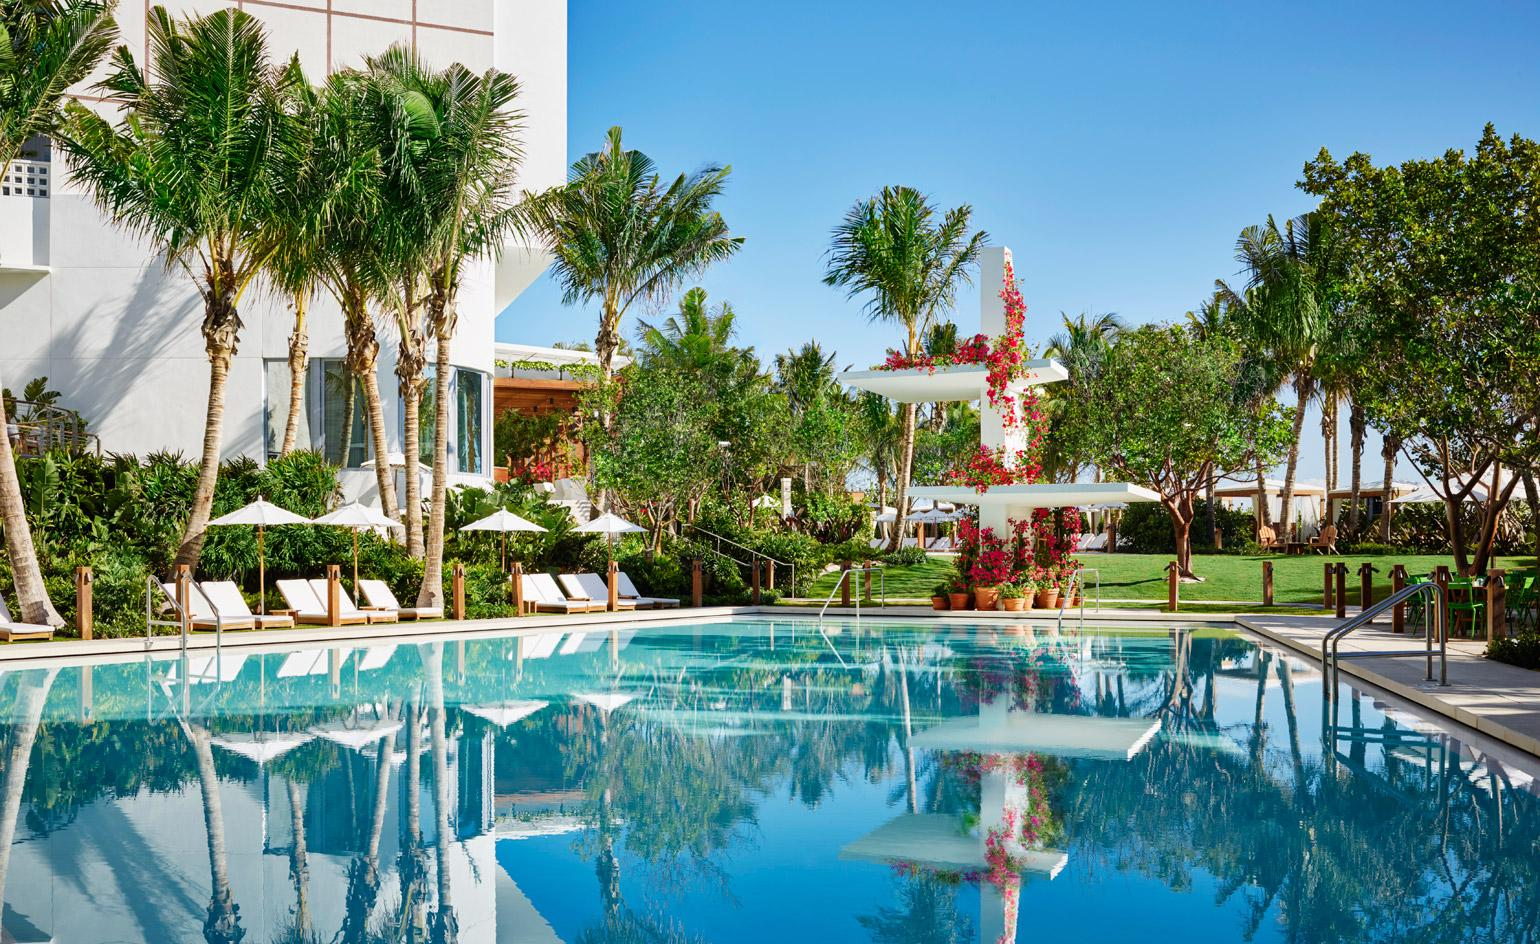 3 Star Hotels In South Beach Miami